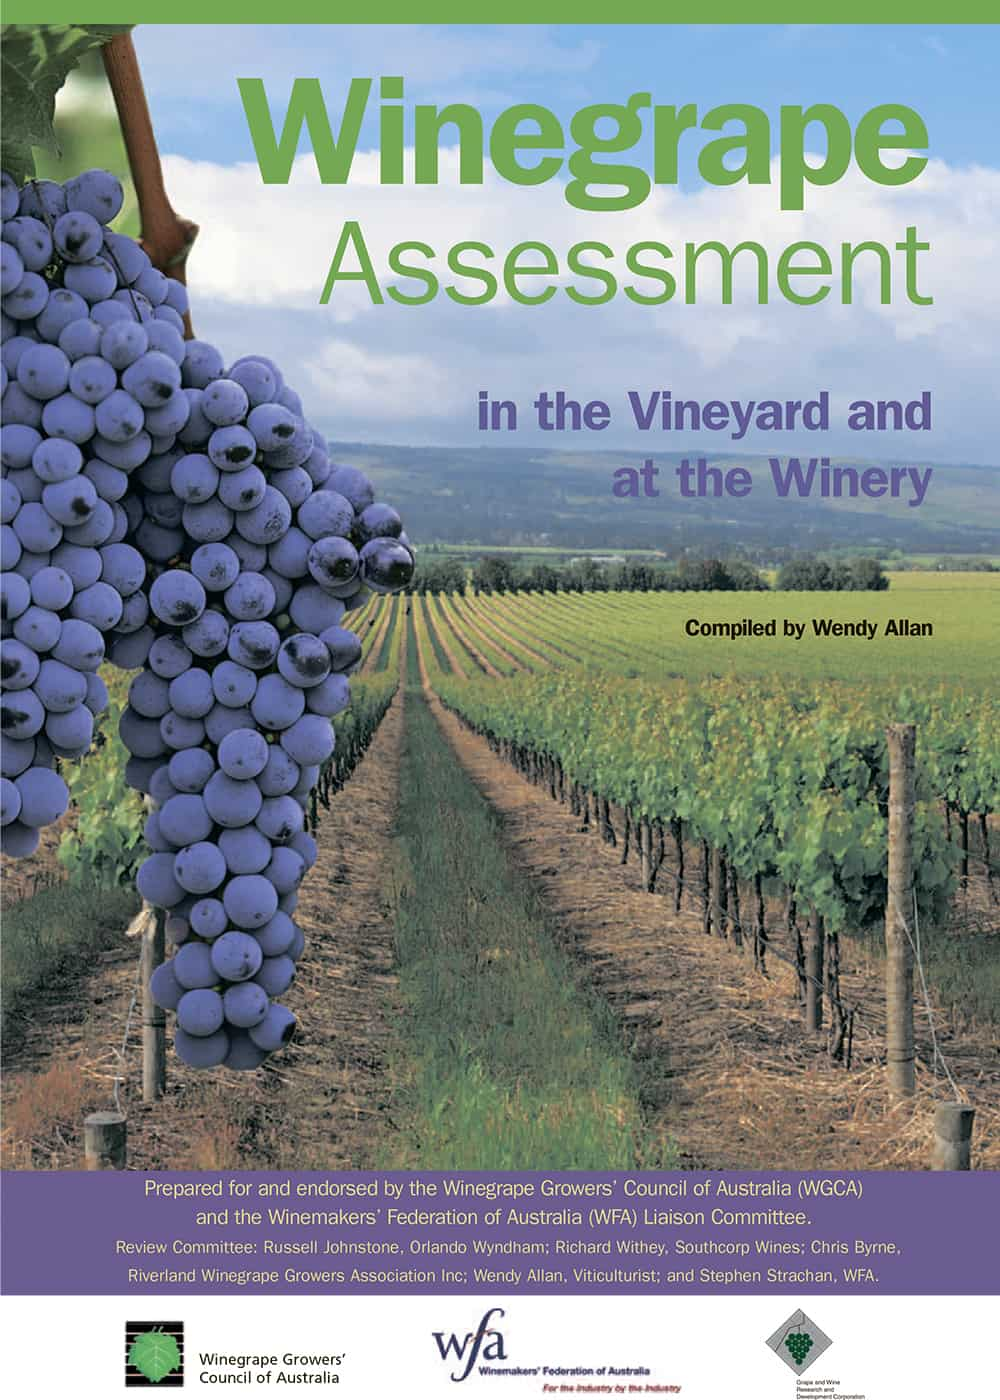 Winegrape Assessment in the Vineyard and at the Winery